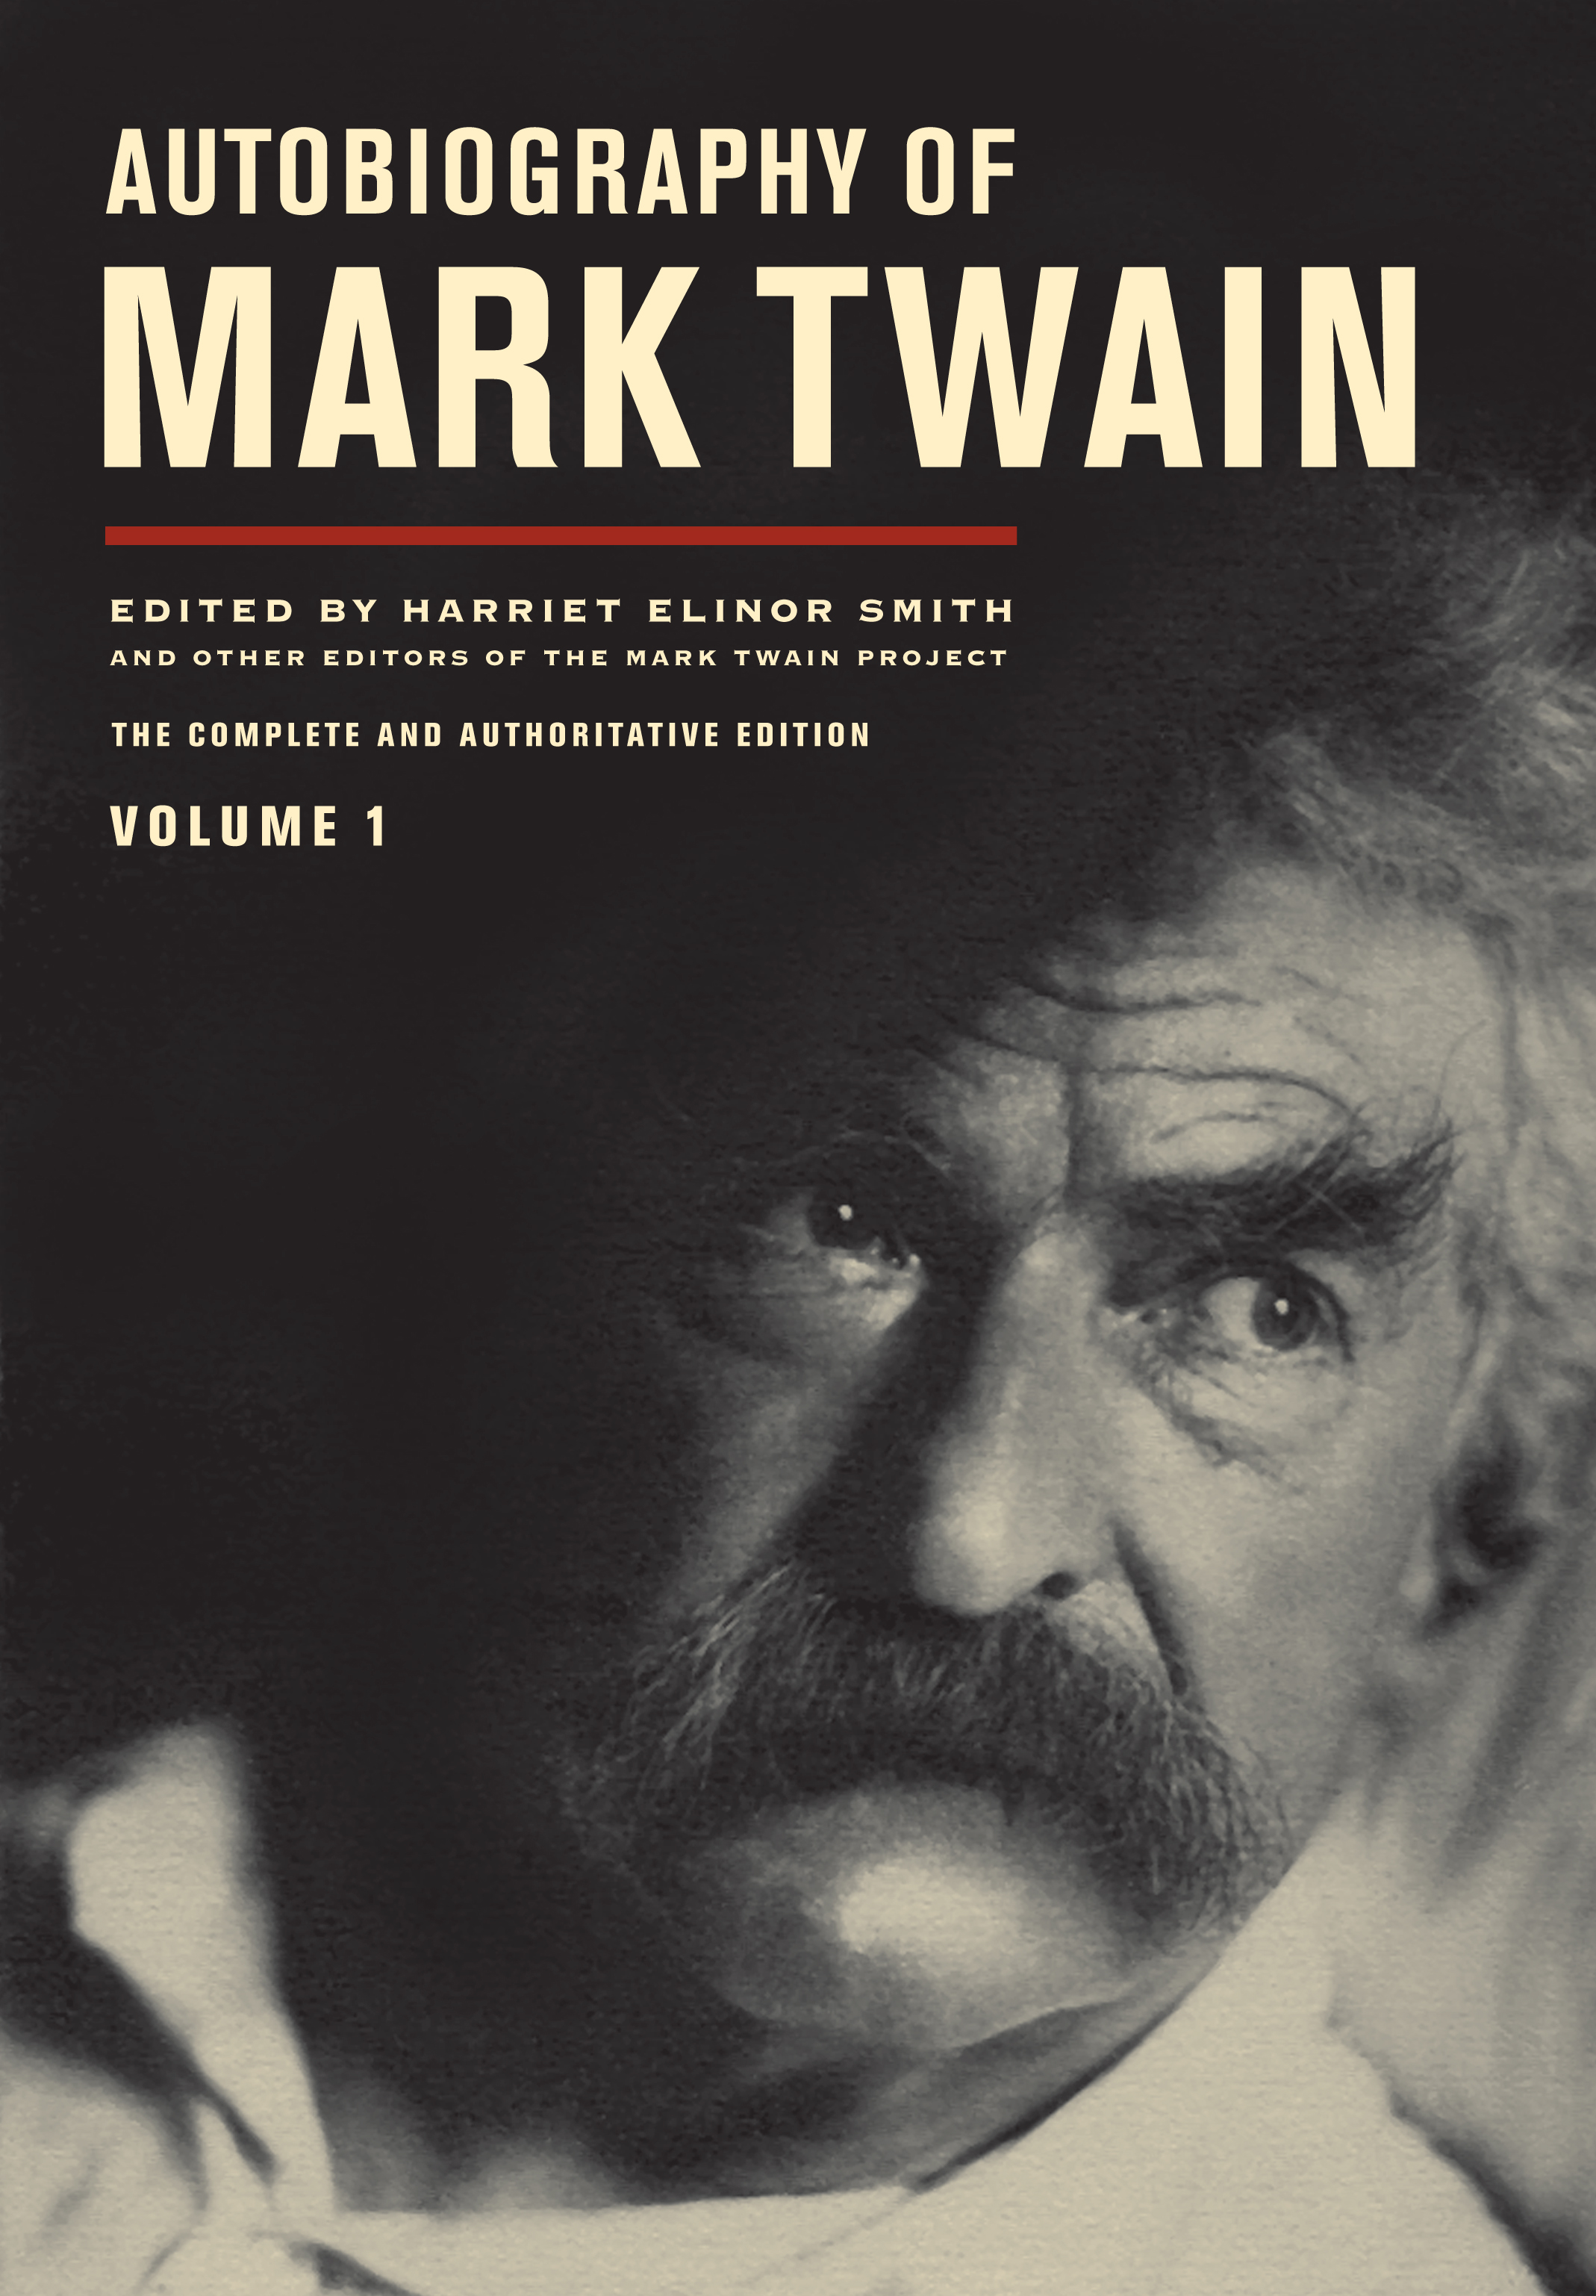 007 Essay Example Mark Twain Essays 9780520267190 Auto V1 Surprising Collected Tales Sketches Speeches And On Writing Post Civil War Full